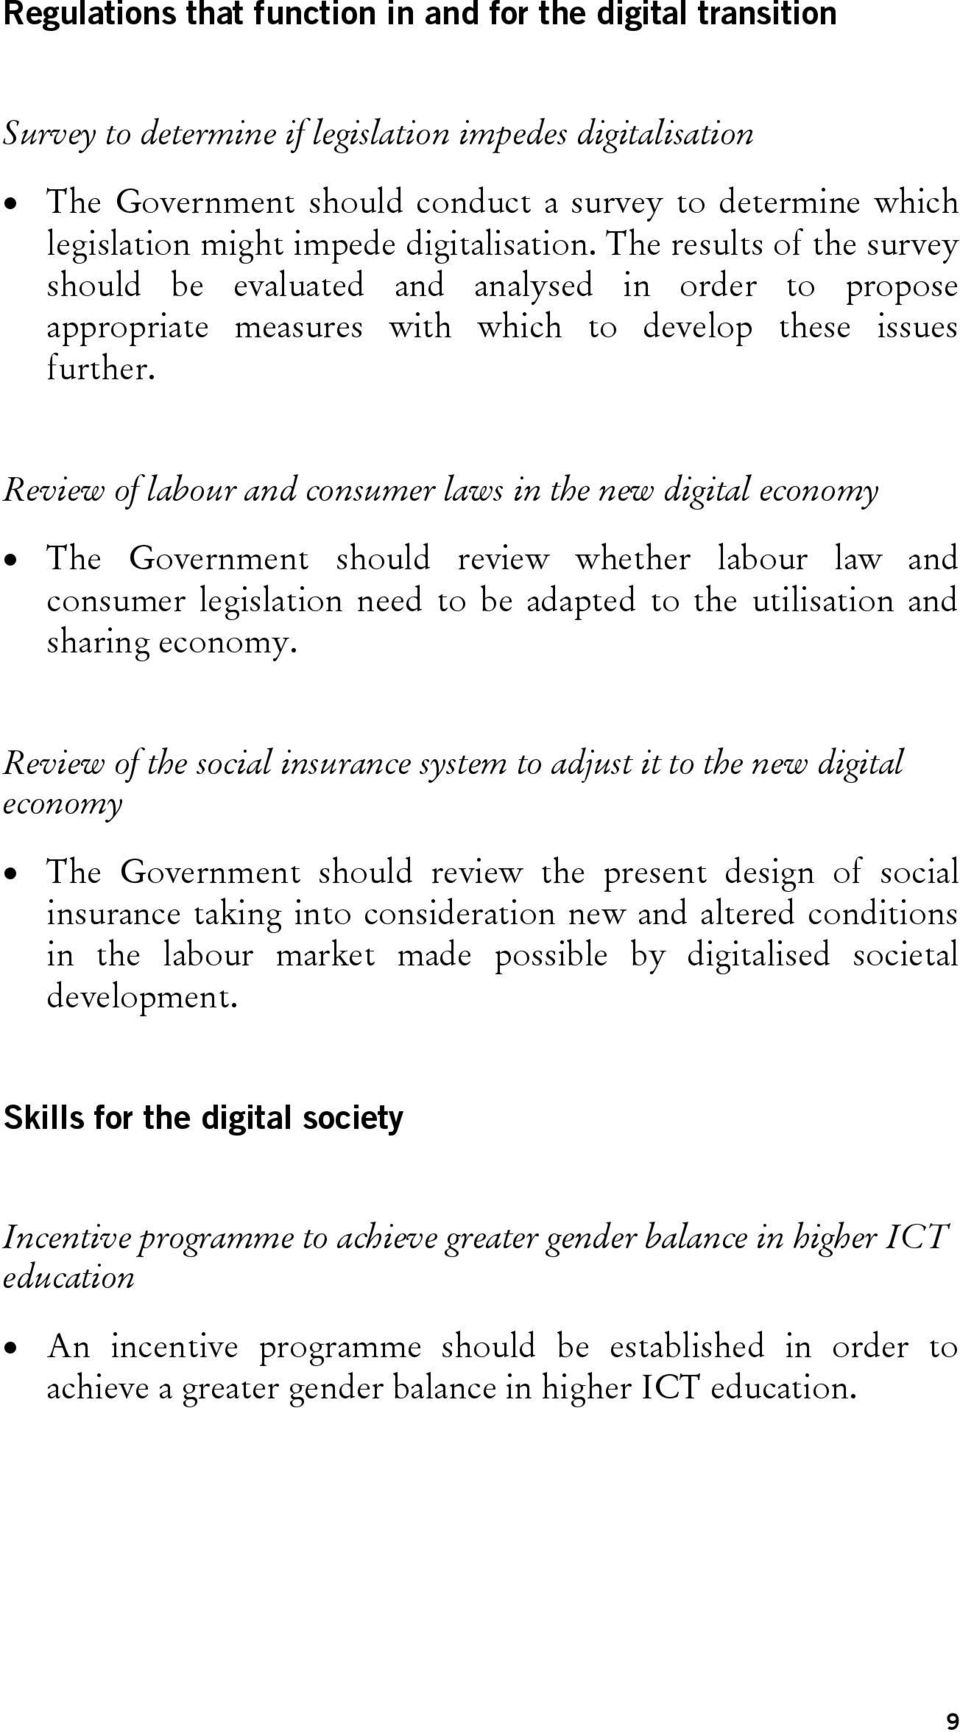 Review of labour and consumer laws in the new digital economy The Government should review whether labour law and consumer legislation need to be adapted to the utilisation and sharing economy.